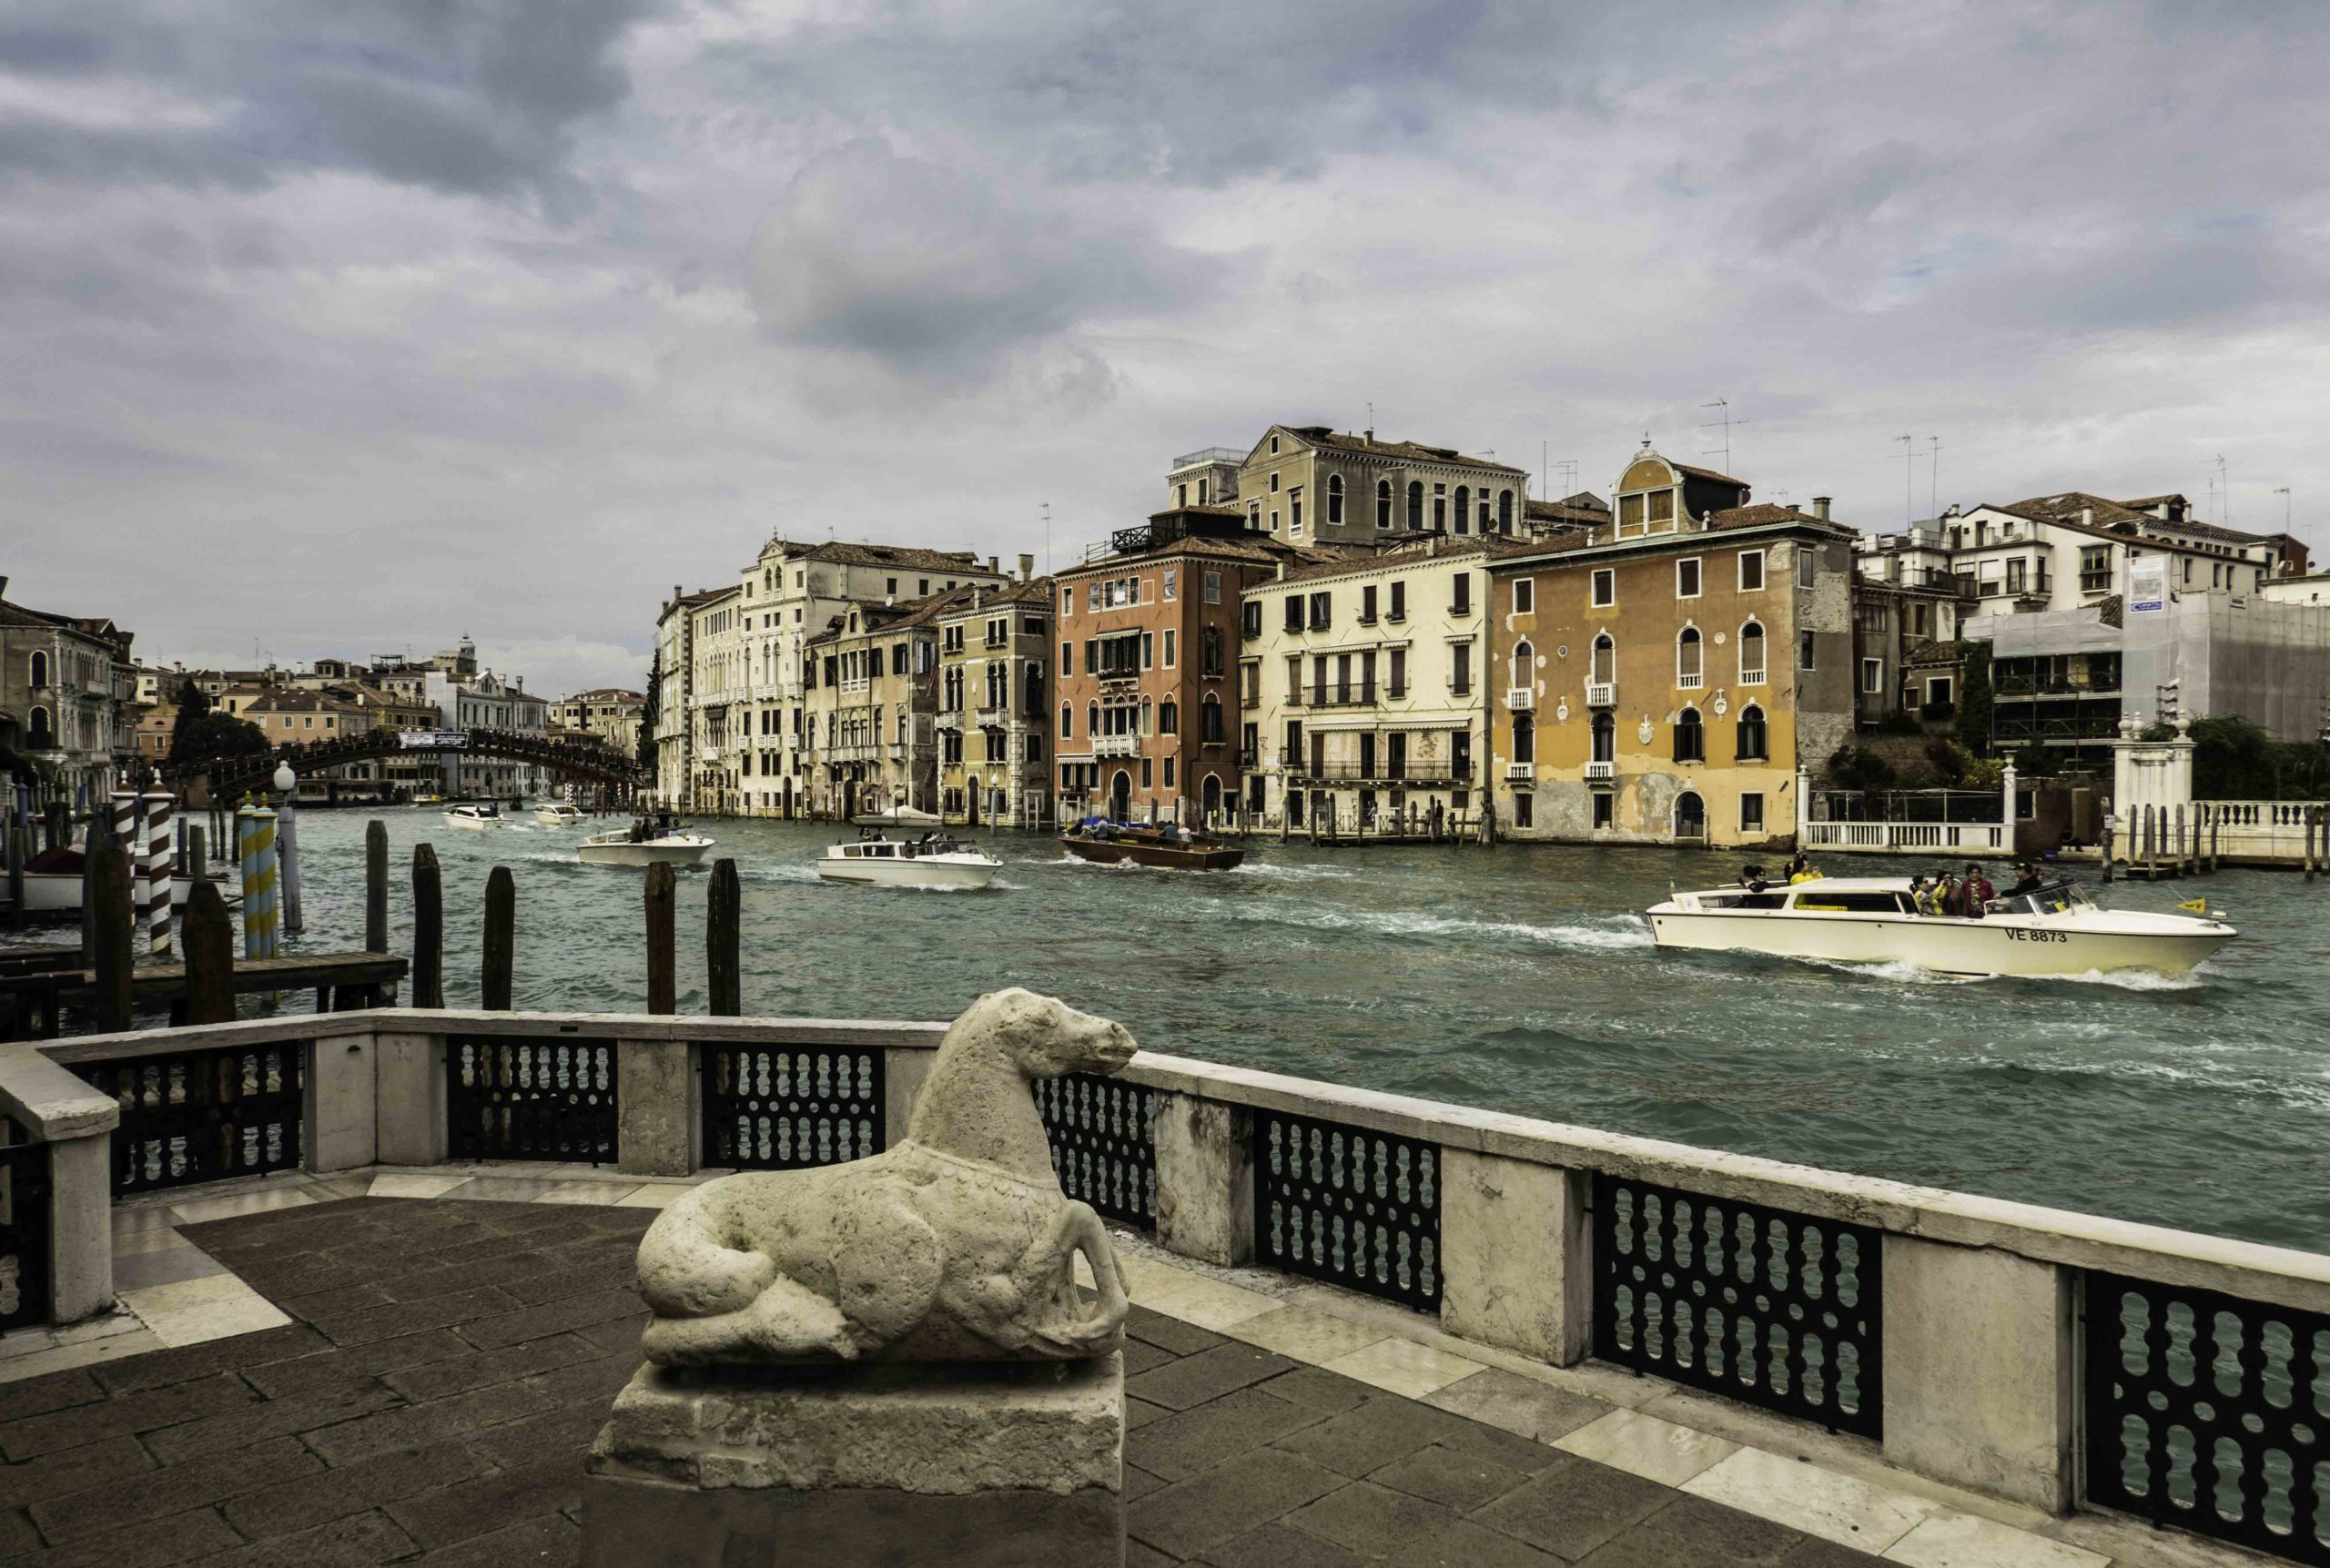 View of The Grand Canal from the Guggenheim museum, Venice, Italy